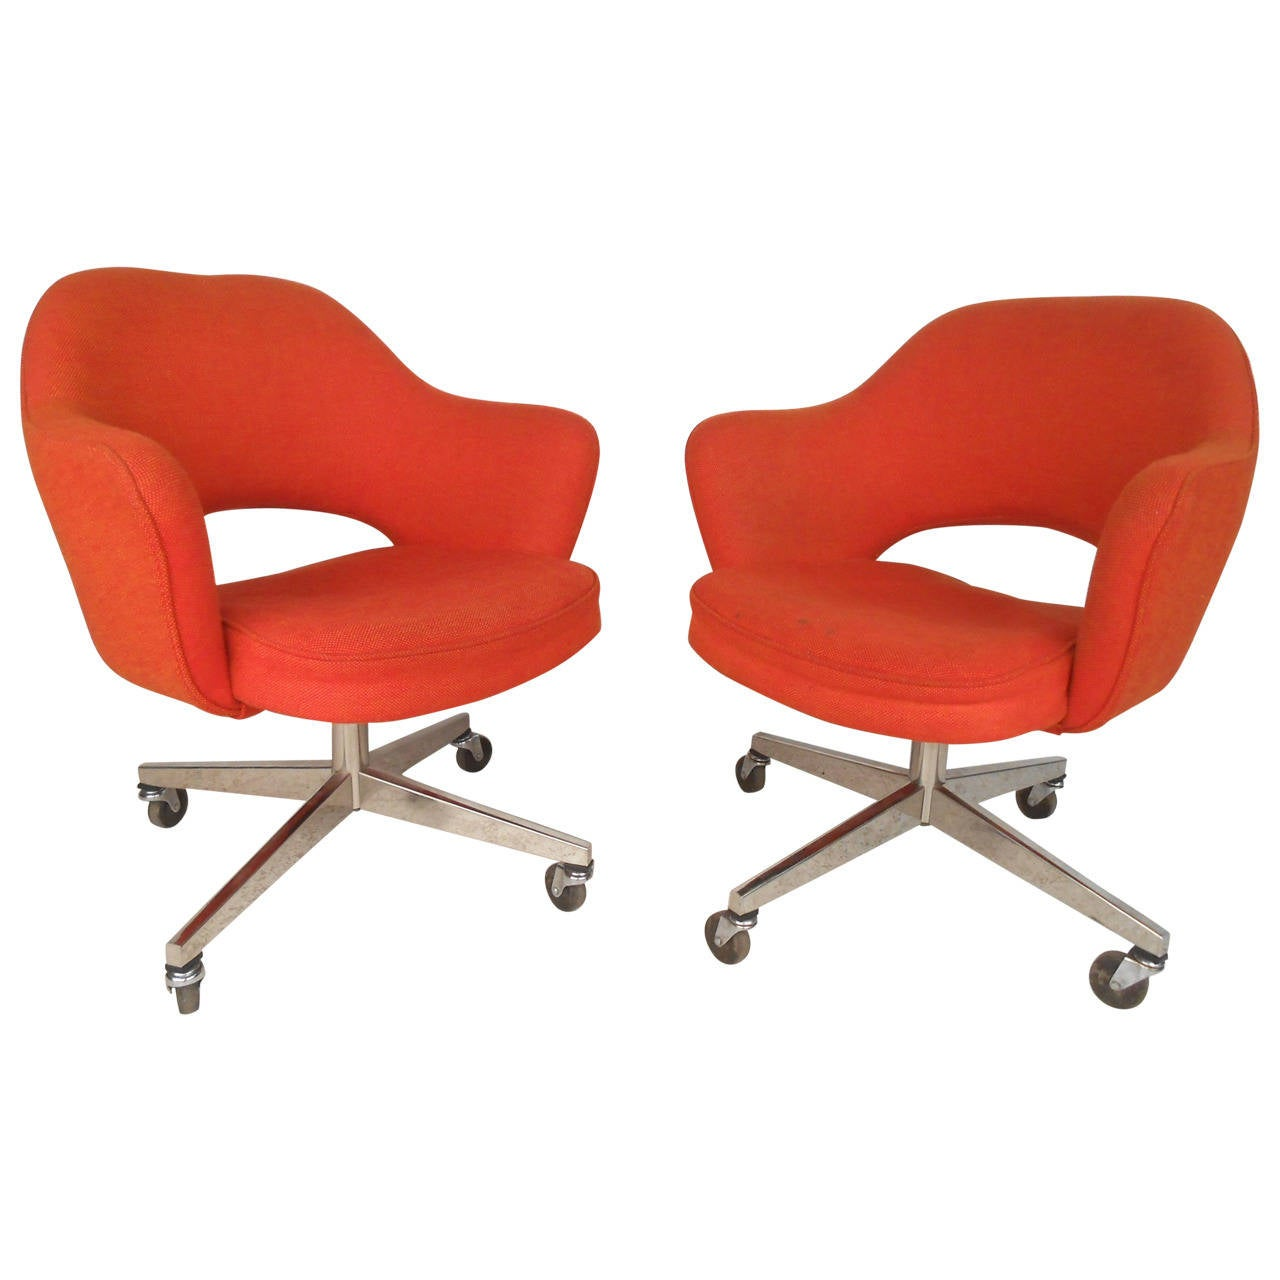 eero saarinen designed rolling chairs for knoll for sale at 1stdibs